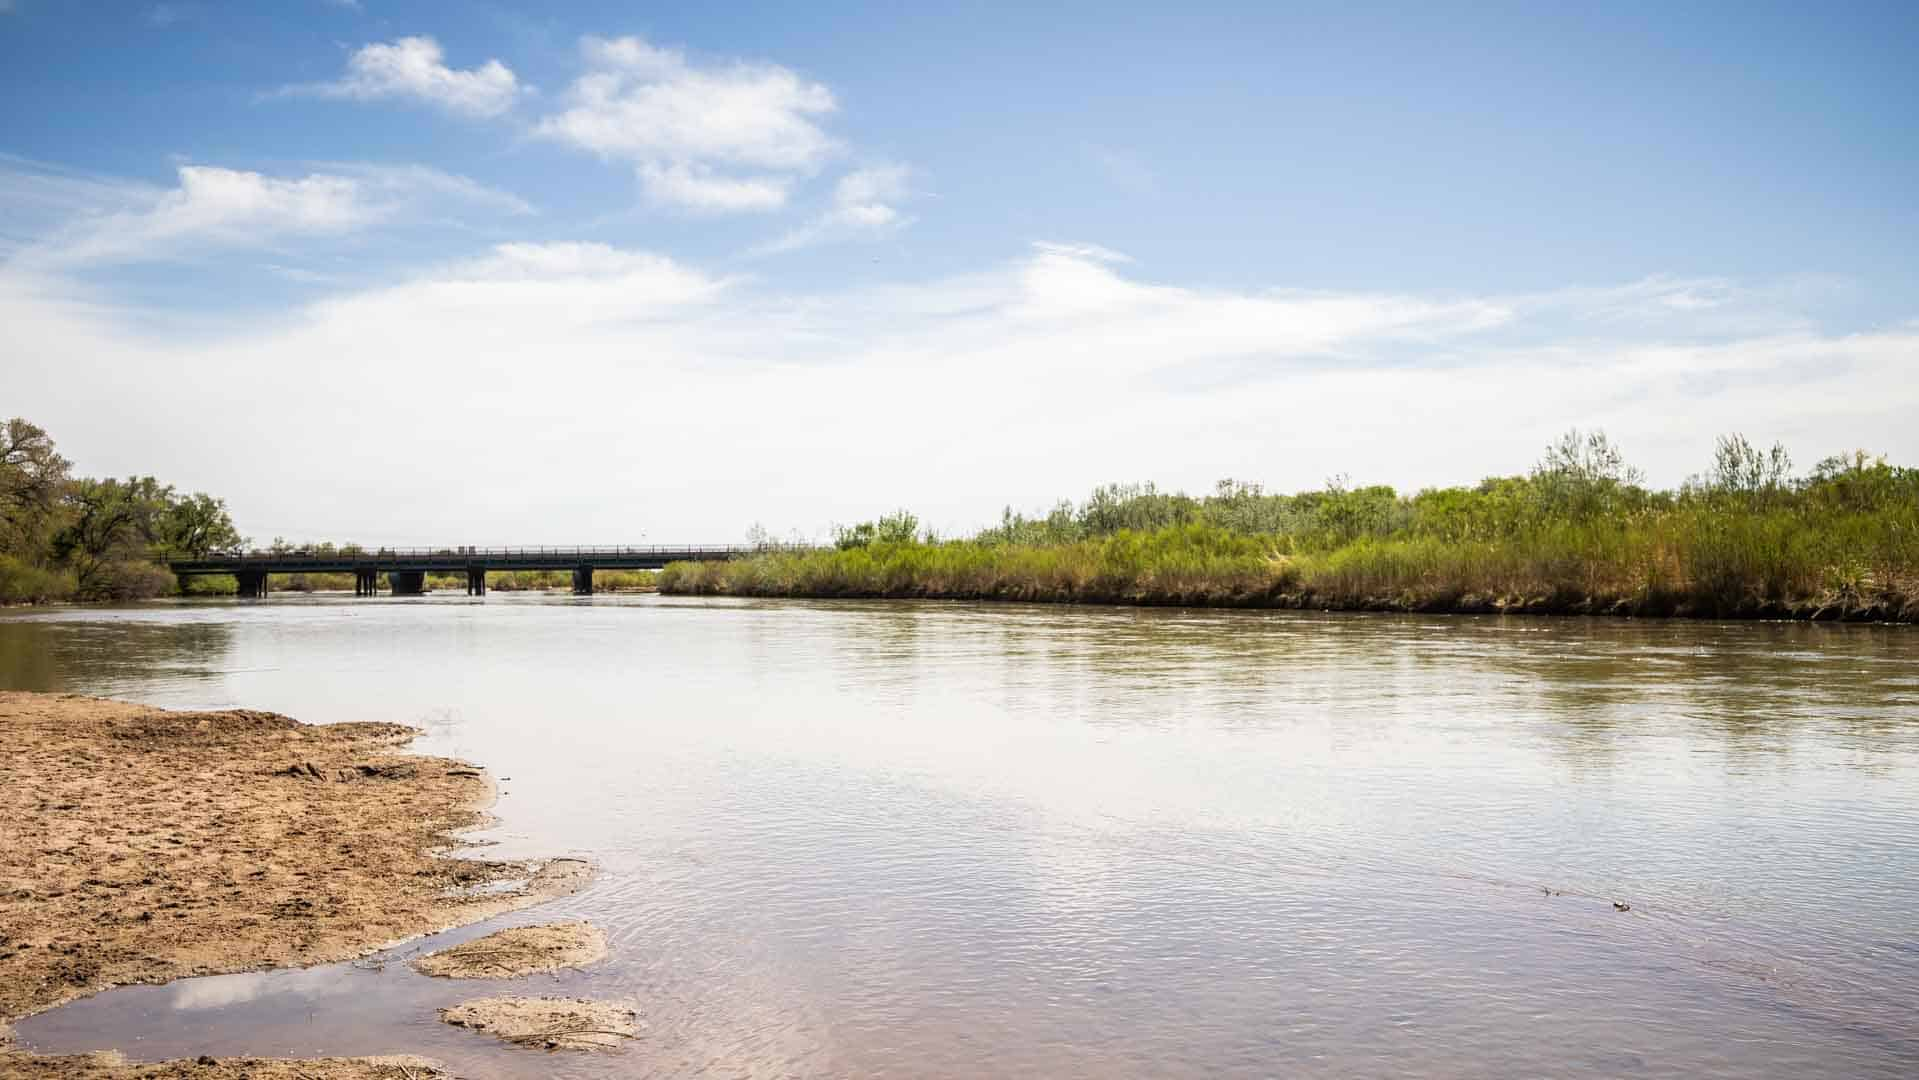 The famous Rio Grande makes its start in Colorado and flows through Albuquerque before becoming one of the main borders between the US and Mexico.